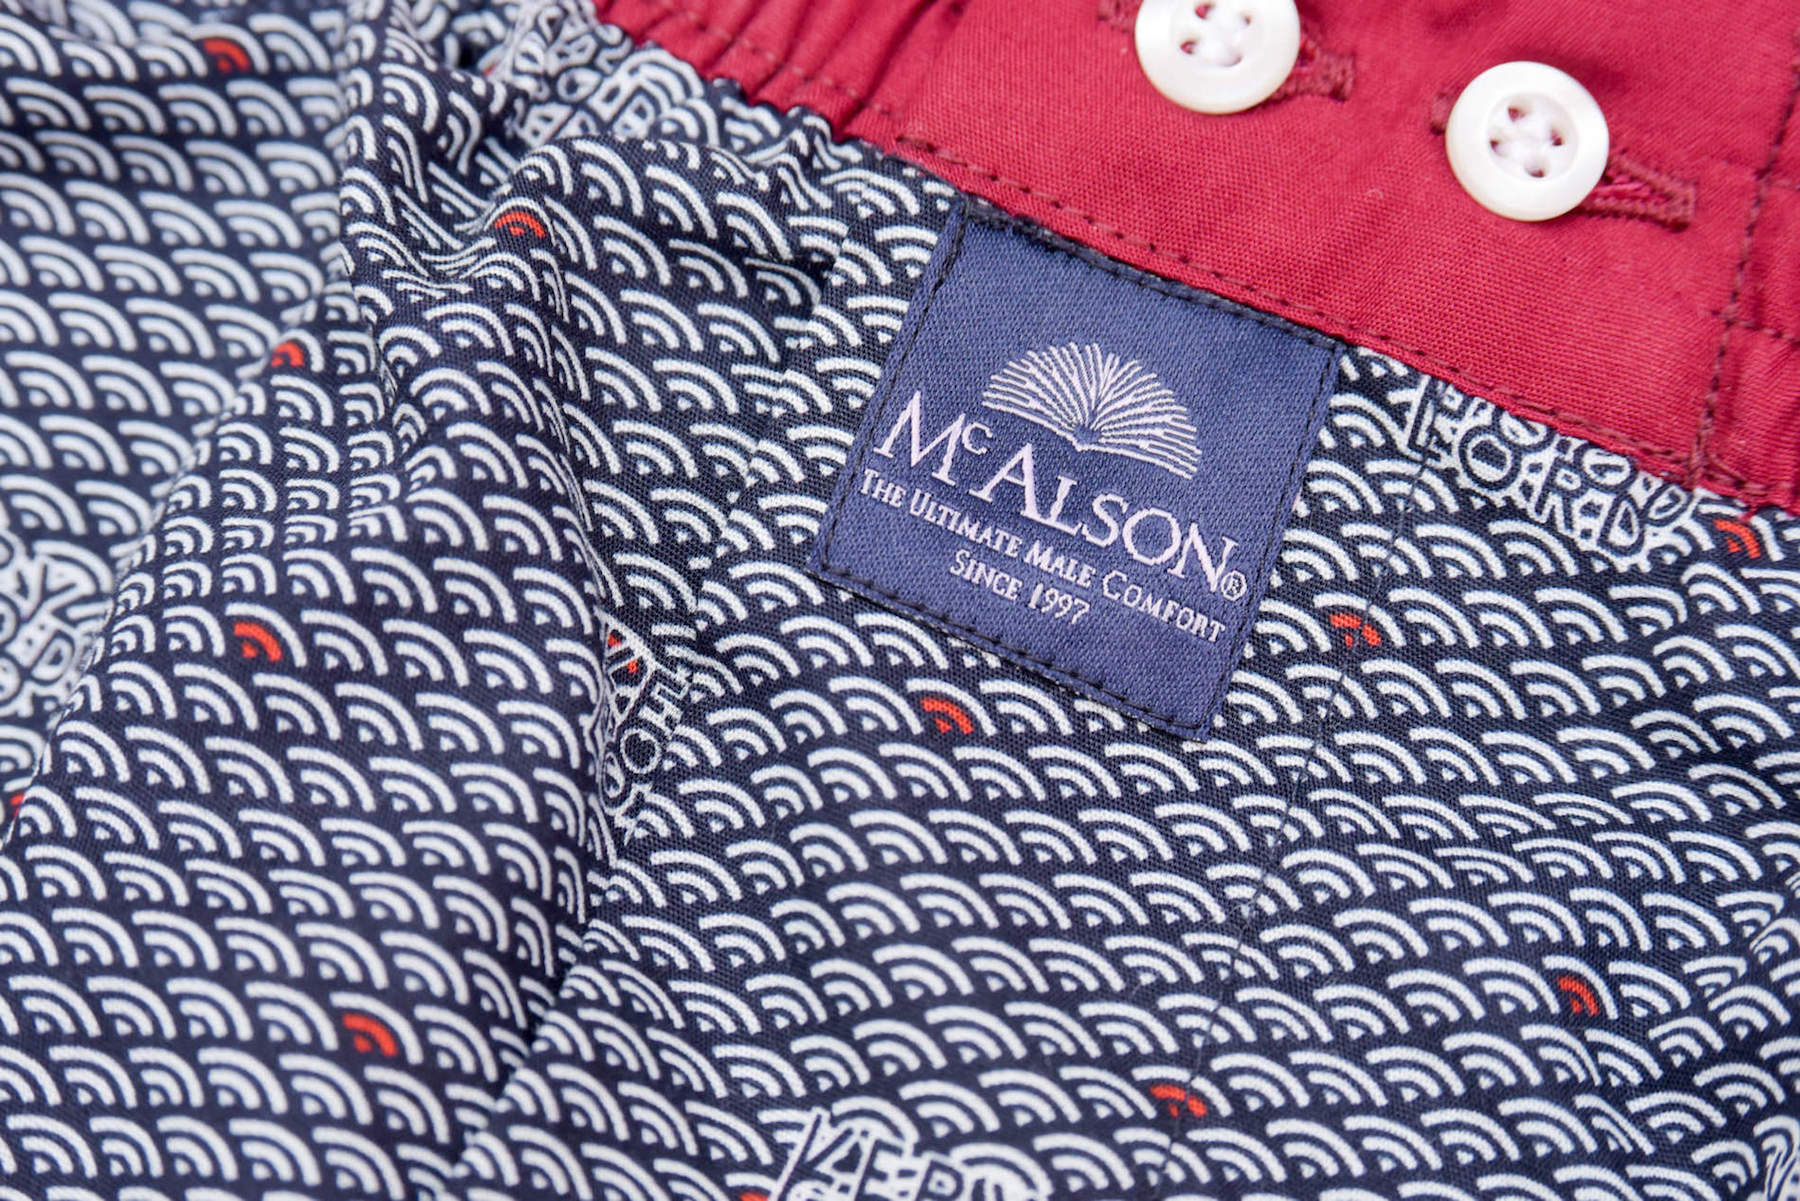 mcalson-the-ultimate-male-comfort